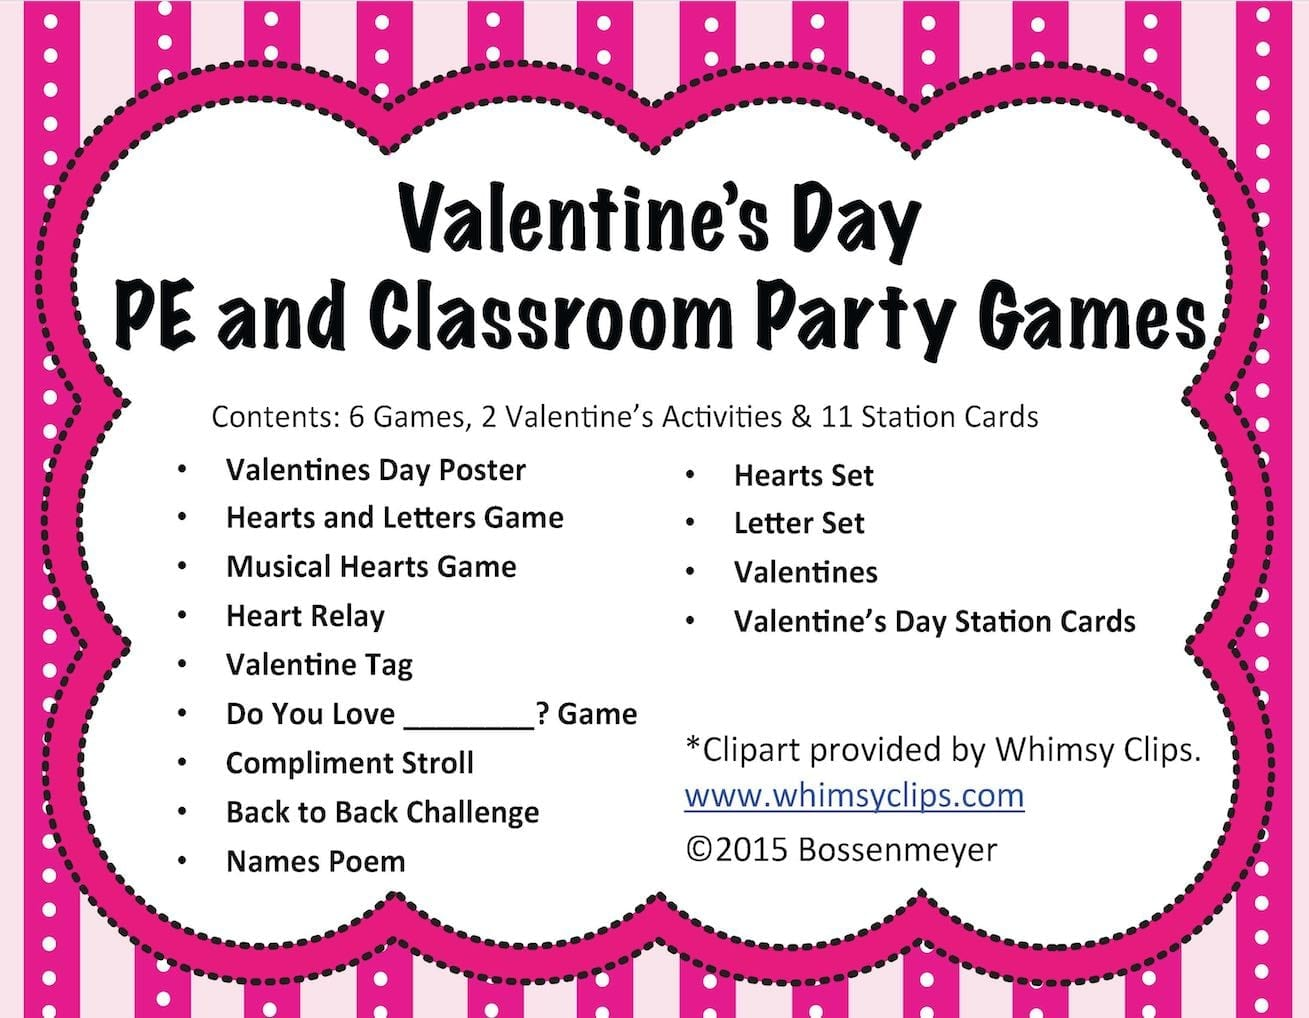 Classroom Birthday Party Games : Valentine s day pe and classroom party games peaceful